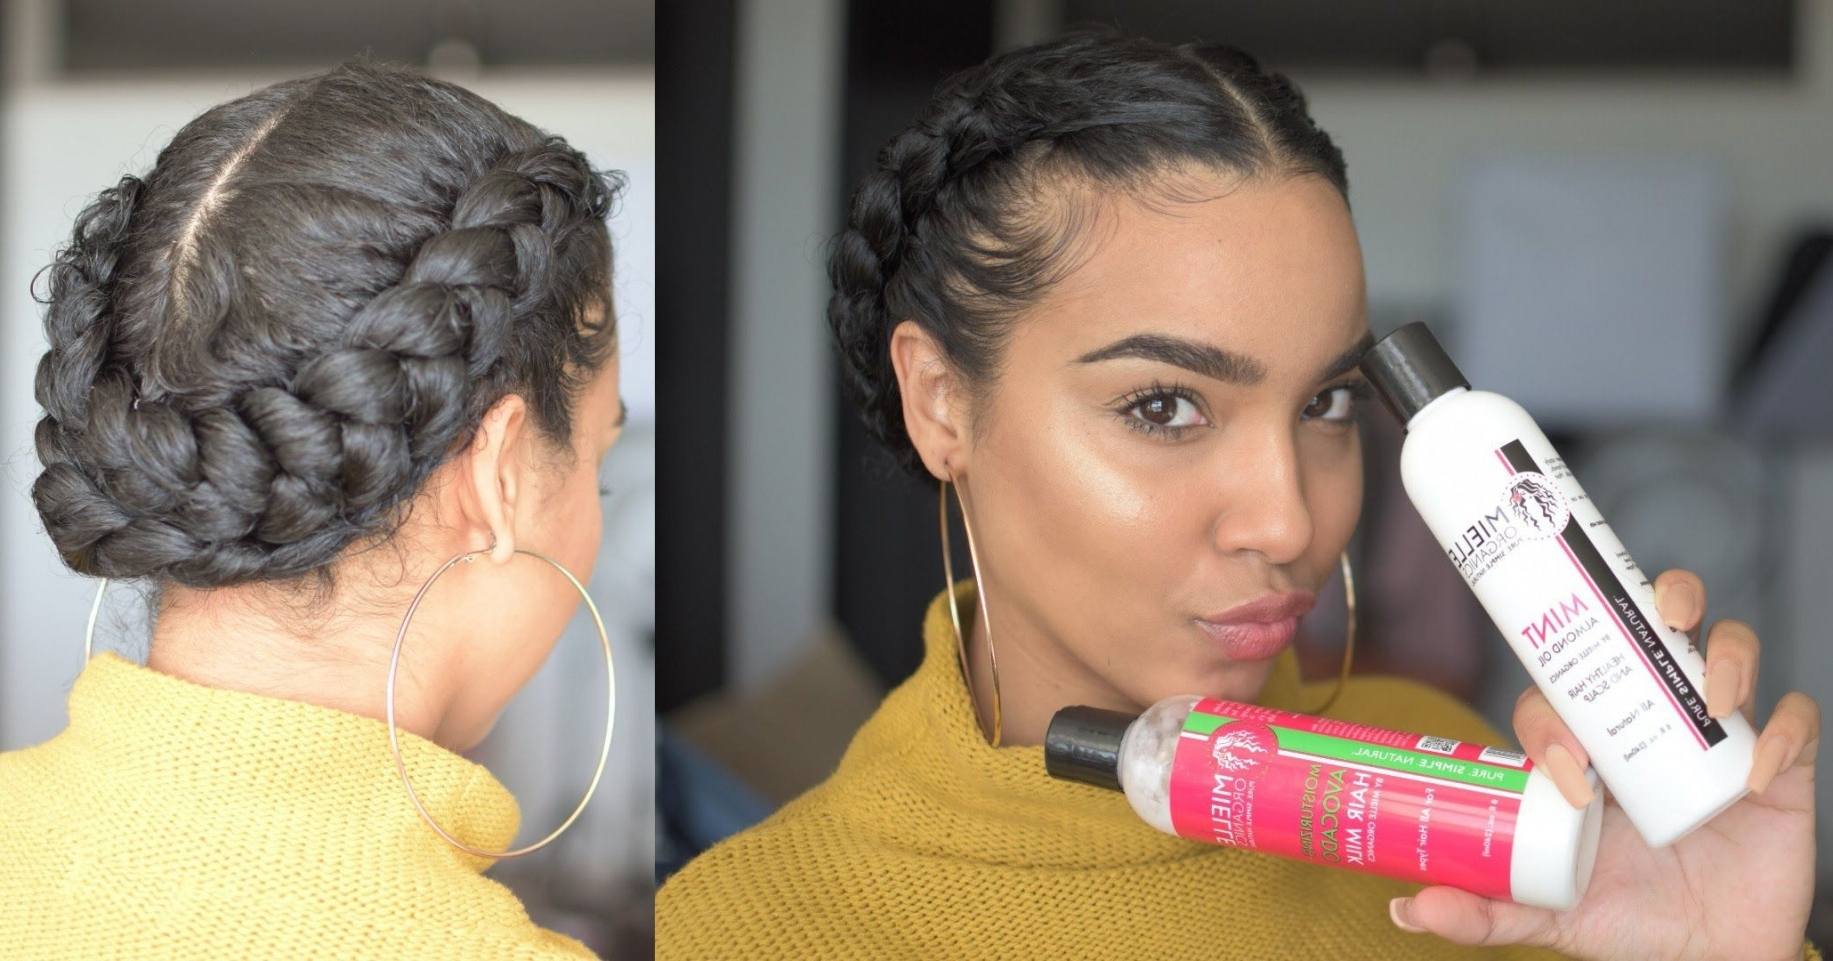 Shocking Quick Braided Hairstyles For Natural Hair Elegant And Easy Regarding Most Recent Braided Hairstyles With Real Hair (View 10 of 15)